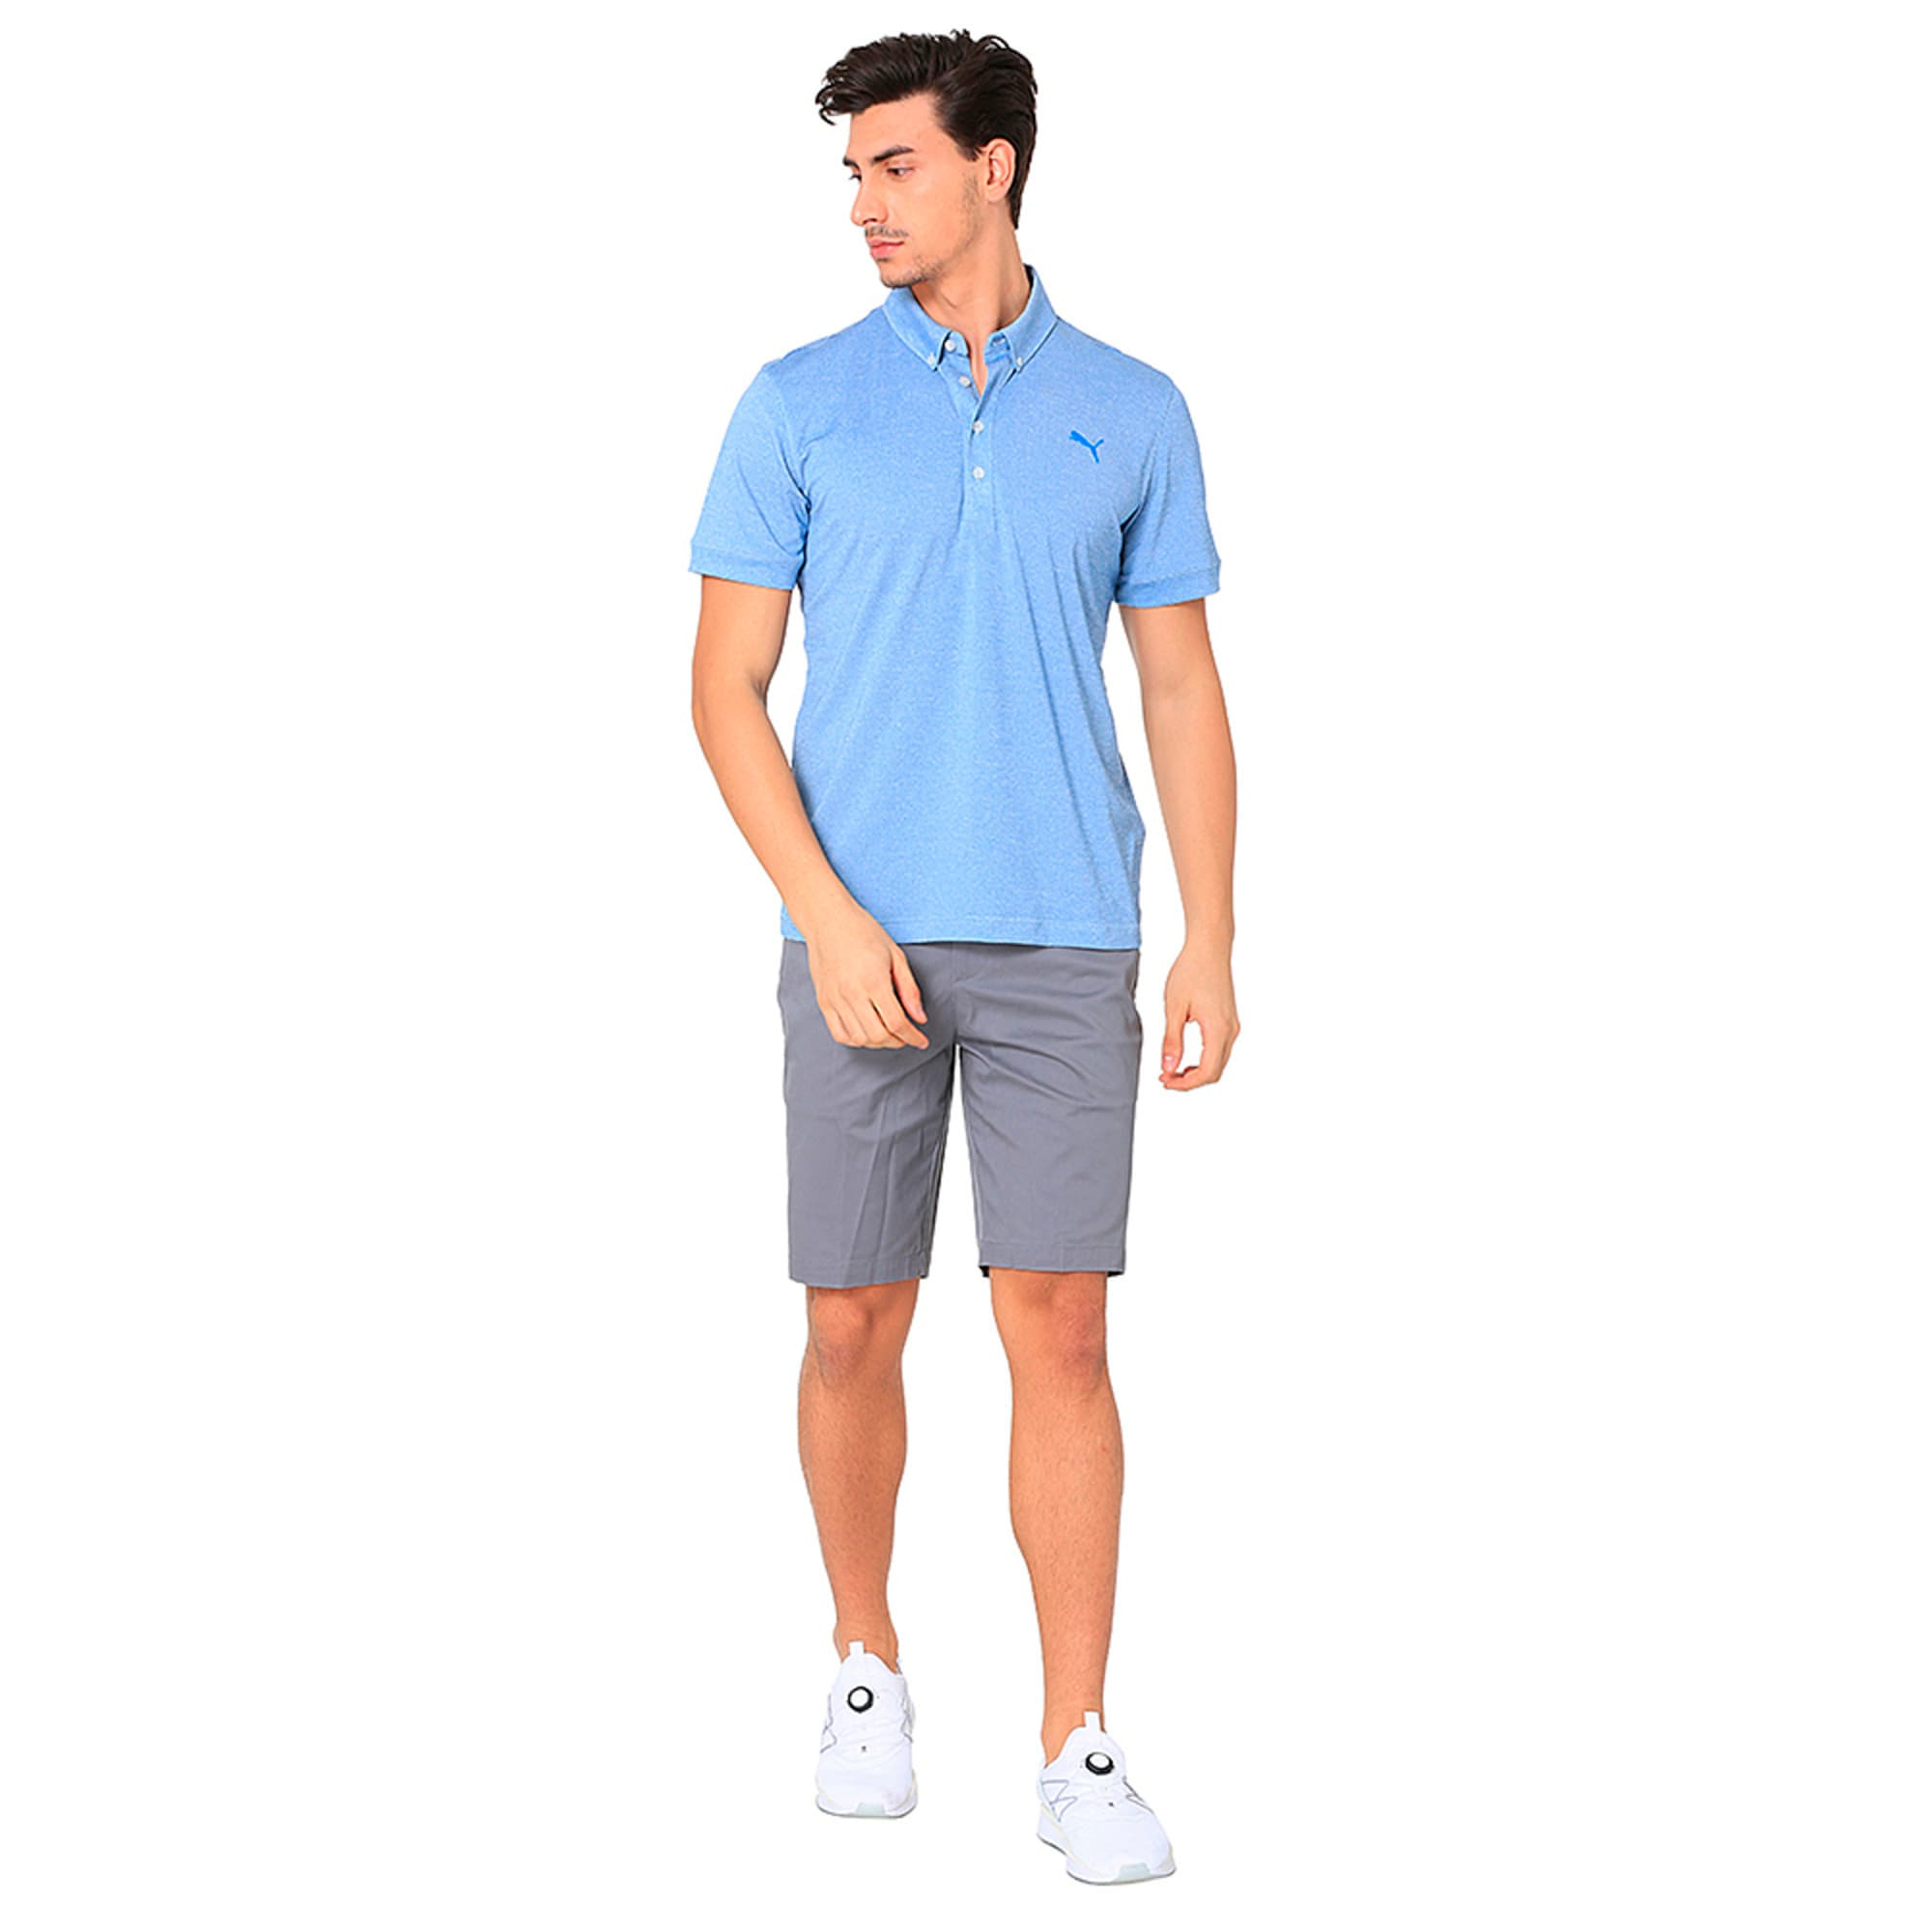 Thumbnail 6 of Golf Men's Tailored Oxford Heather Polo, EBL Heather, medium-IND